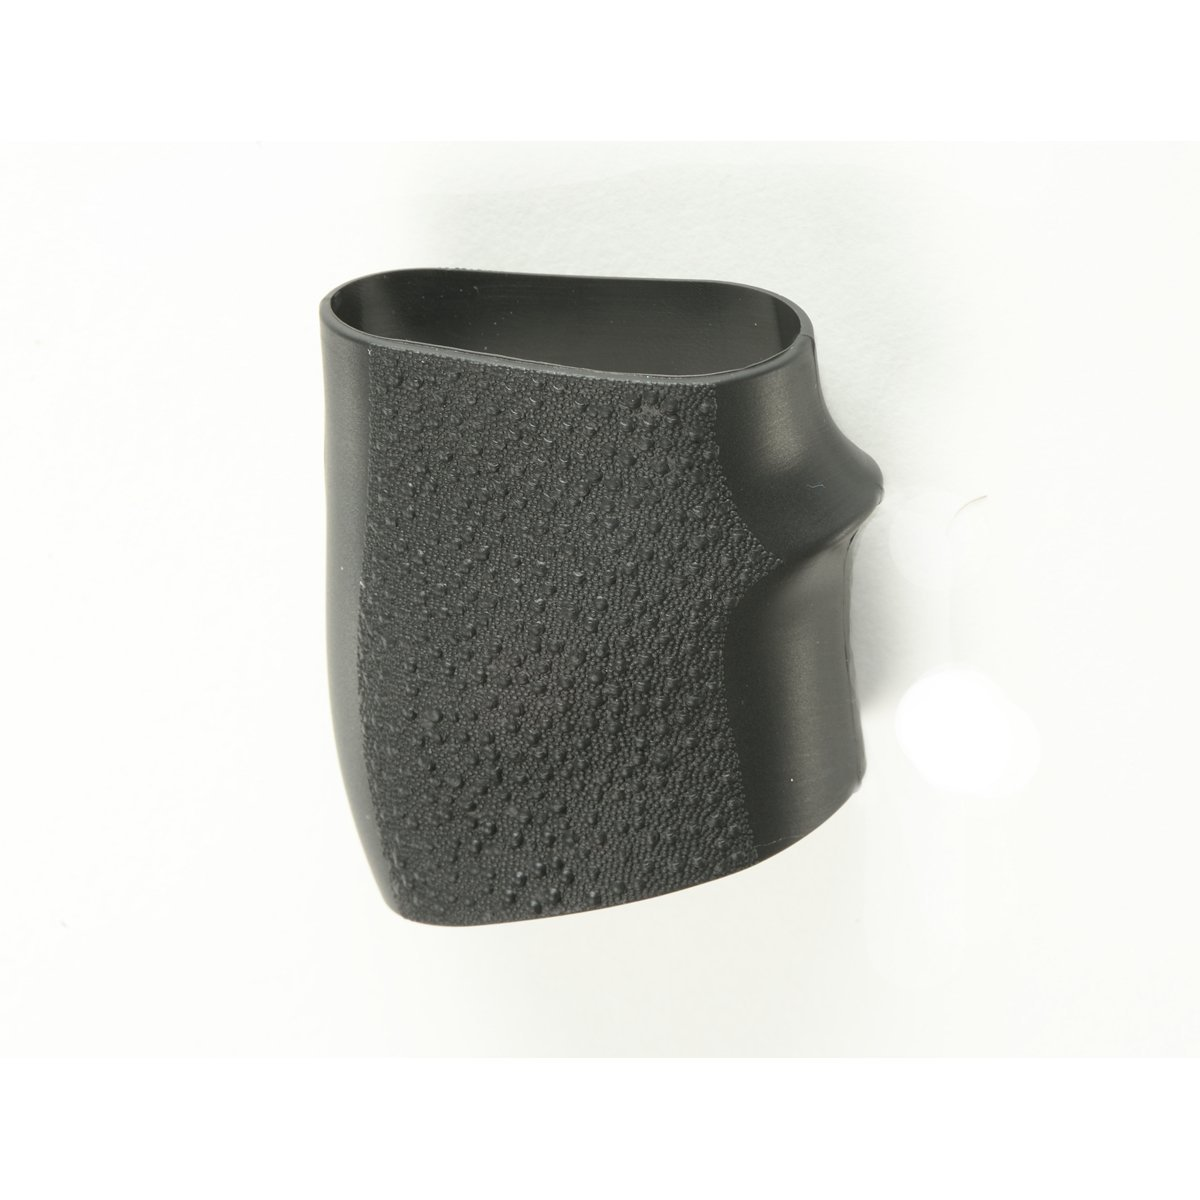 Fixxxer Rubber Grip Tactical Sleeve II, Small Size Sleeve (Black)